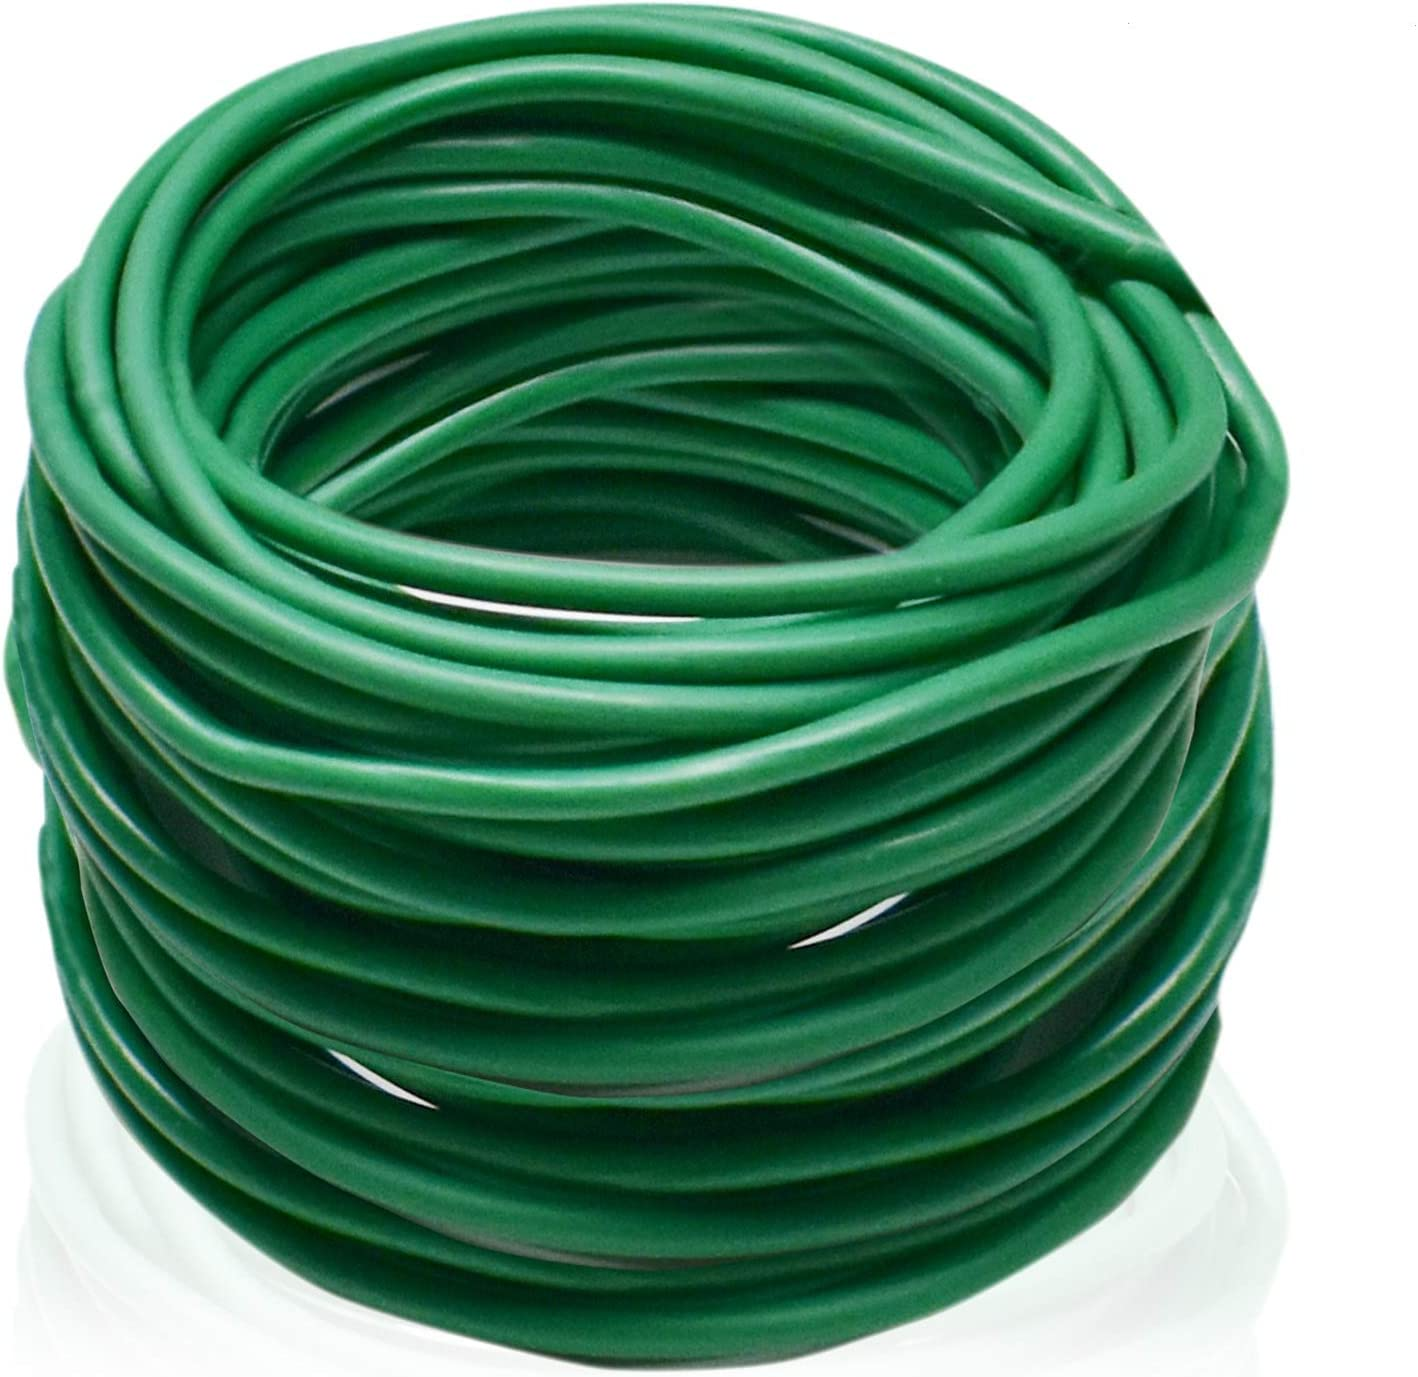 Halatool 65.6 Feet Green Soft Plant Tie, Reusable Garden Plant Twist Tie, Garden Wire Tie for Support Tomato Branches Vines and Stalks